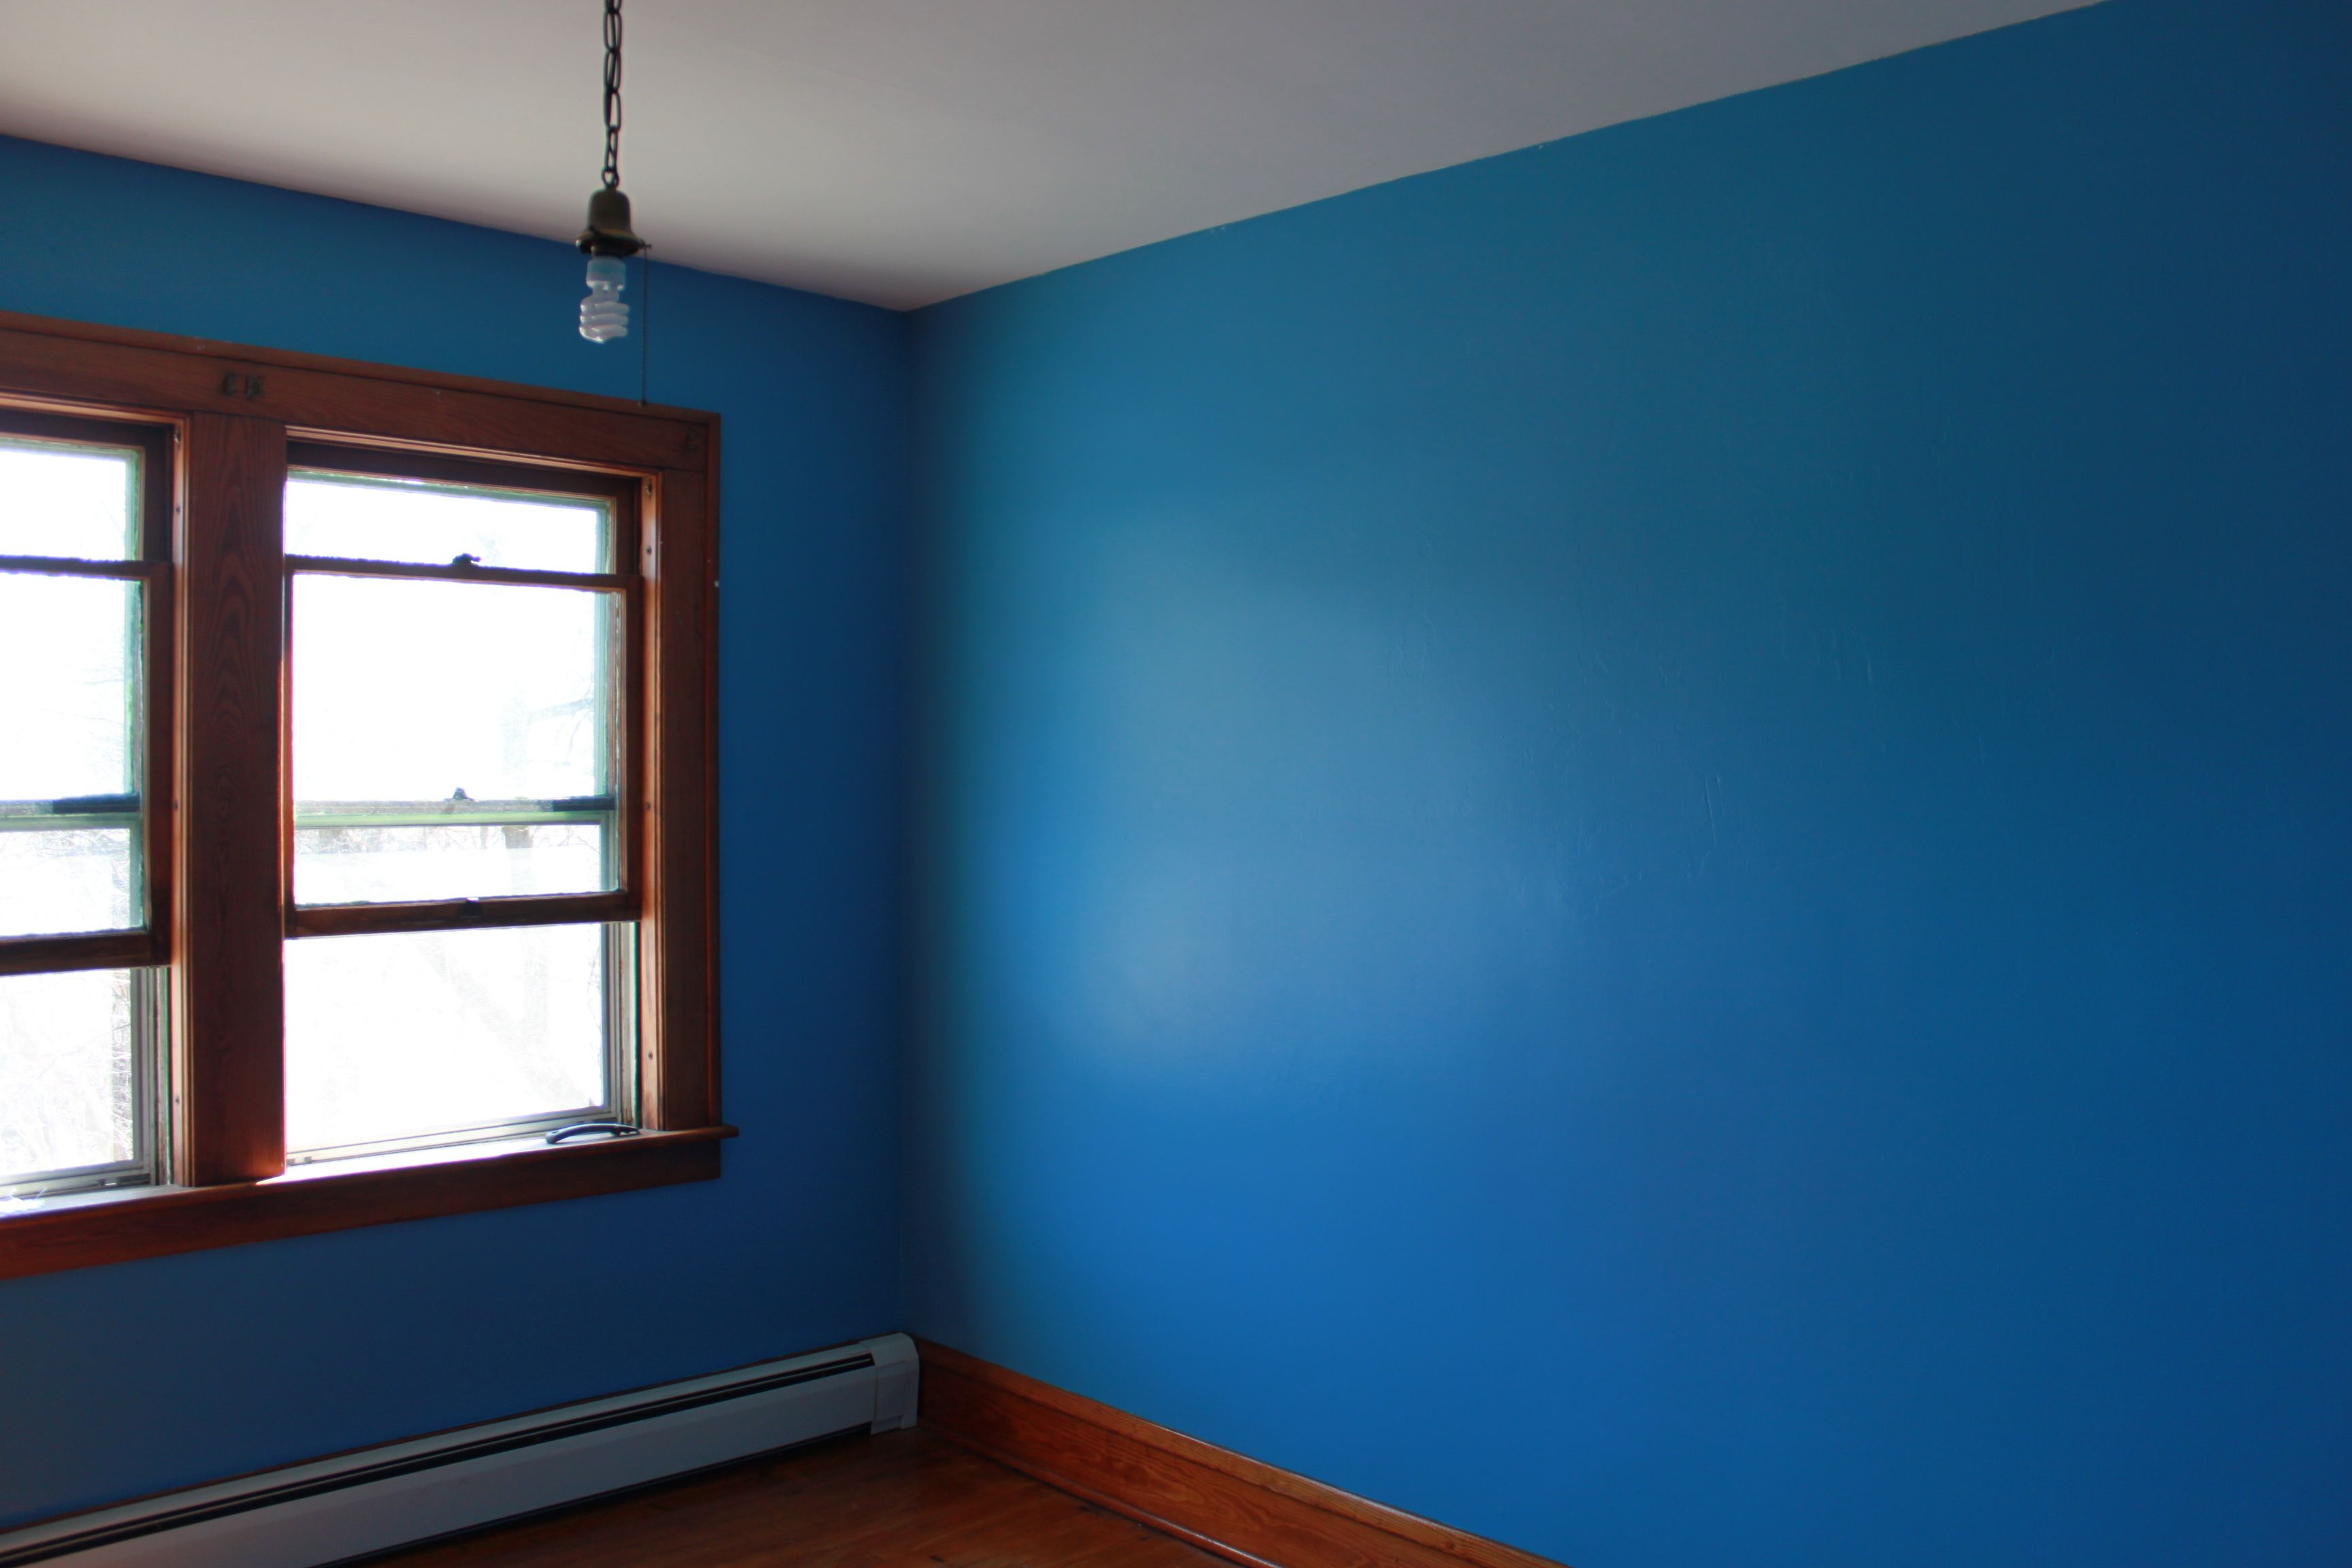 Painting, Alligatoring Paint And Plaster Walls